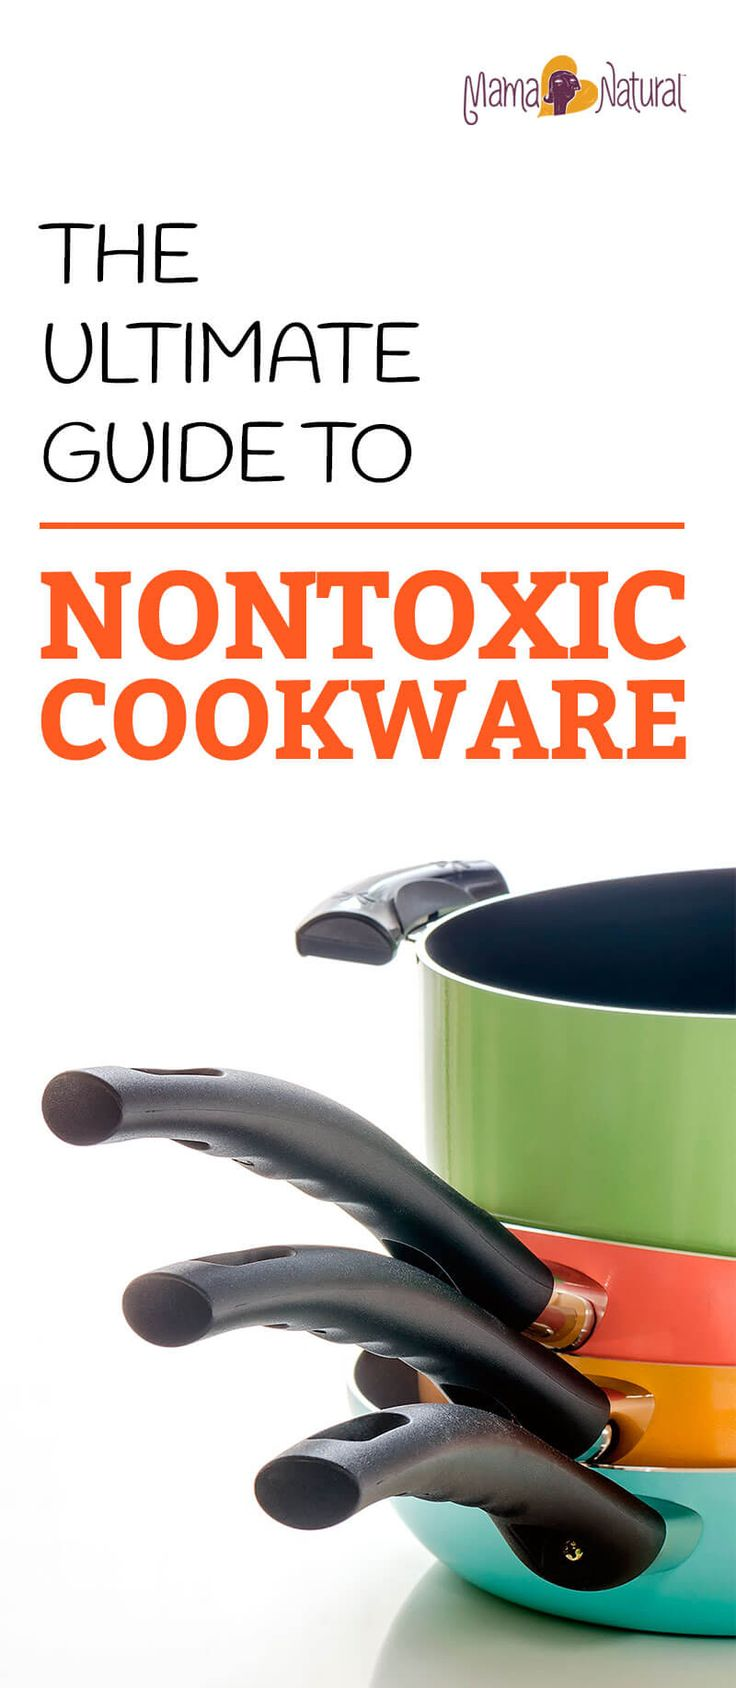 Looking for the best cookware to replace your old toxic ones? Here are some safe, nontoxic cookware options for every dish and every cooking style. https://www.mamanatural.com/best-cookware/